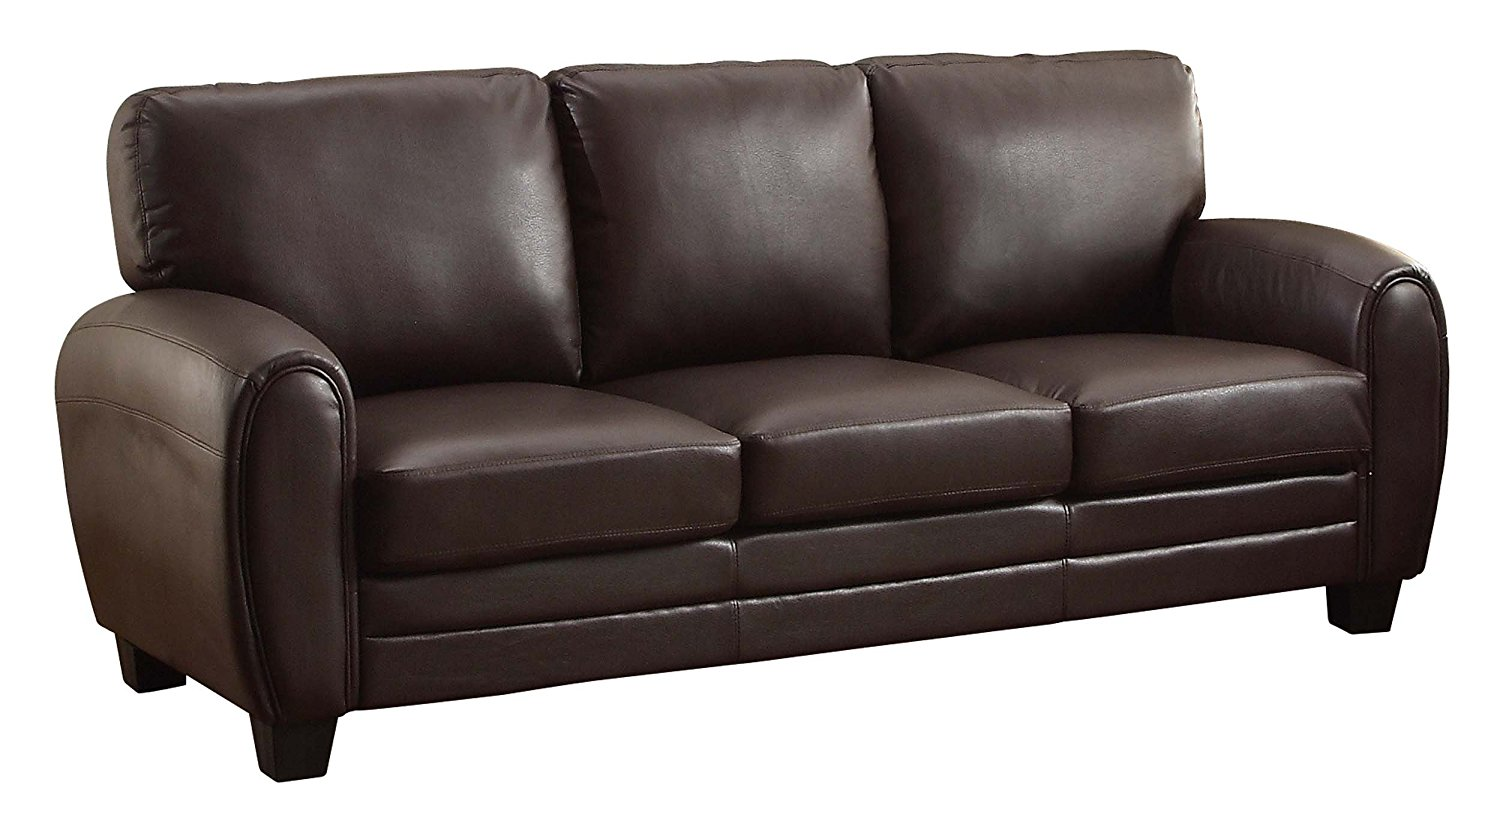 Contemporary & Best Leather Sofa for the Money : Reviews and Tips